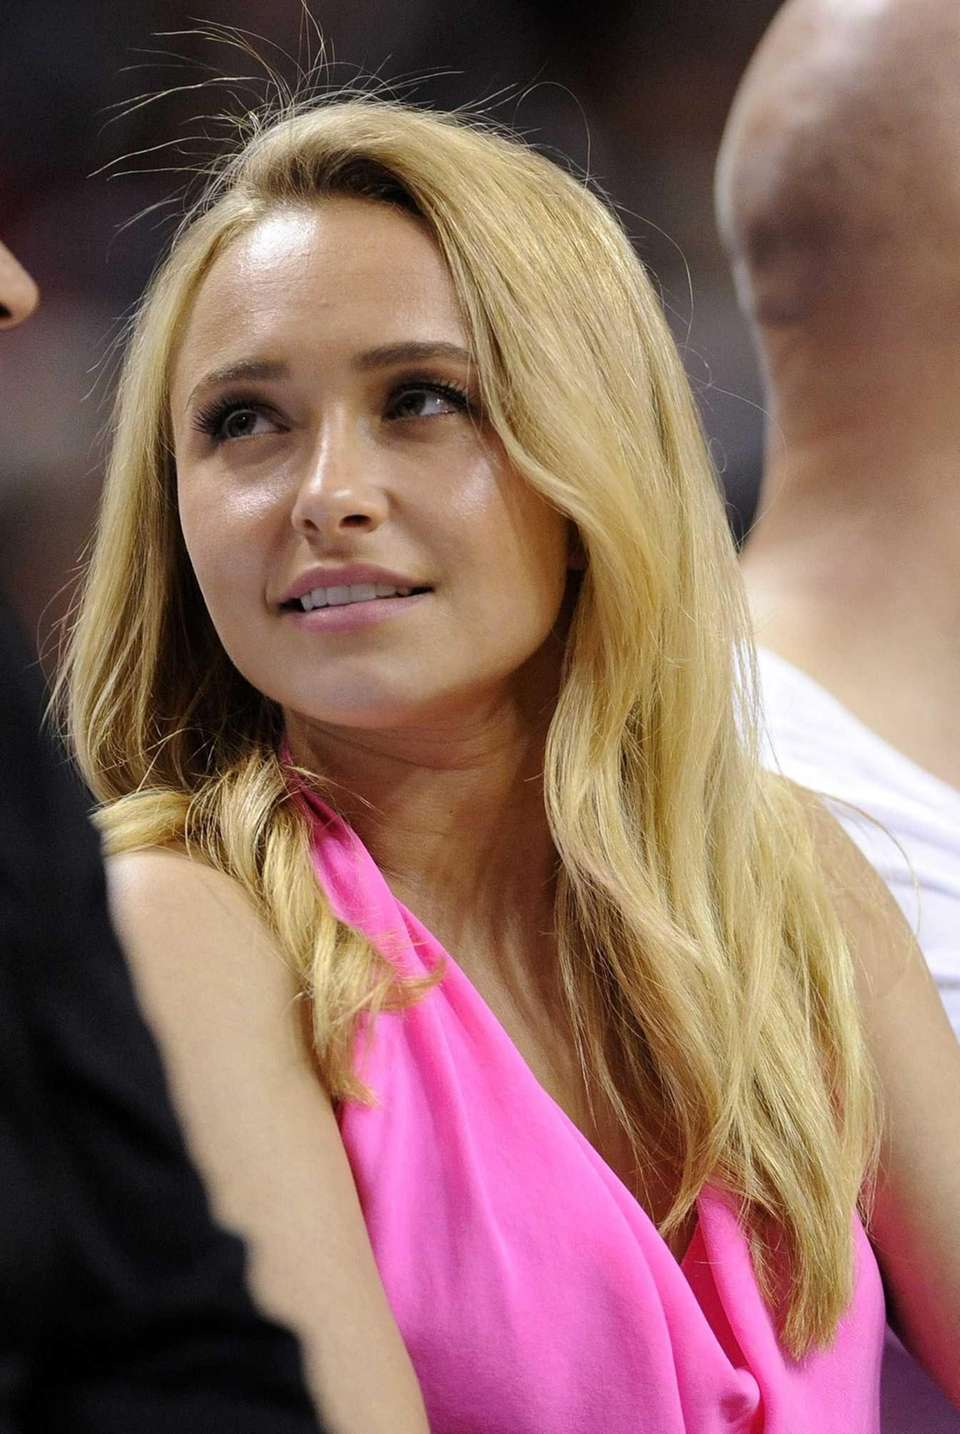 Actress Hayden Panettiere watches the Miami Heat play